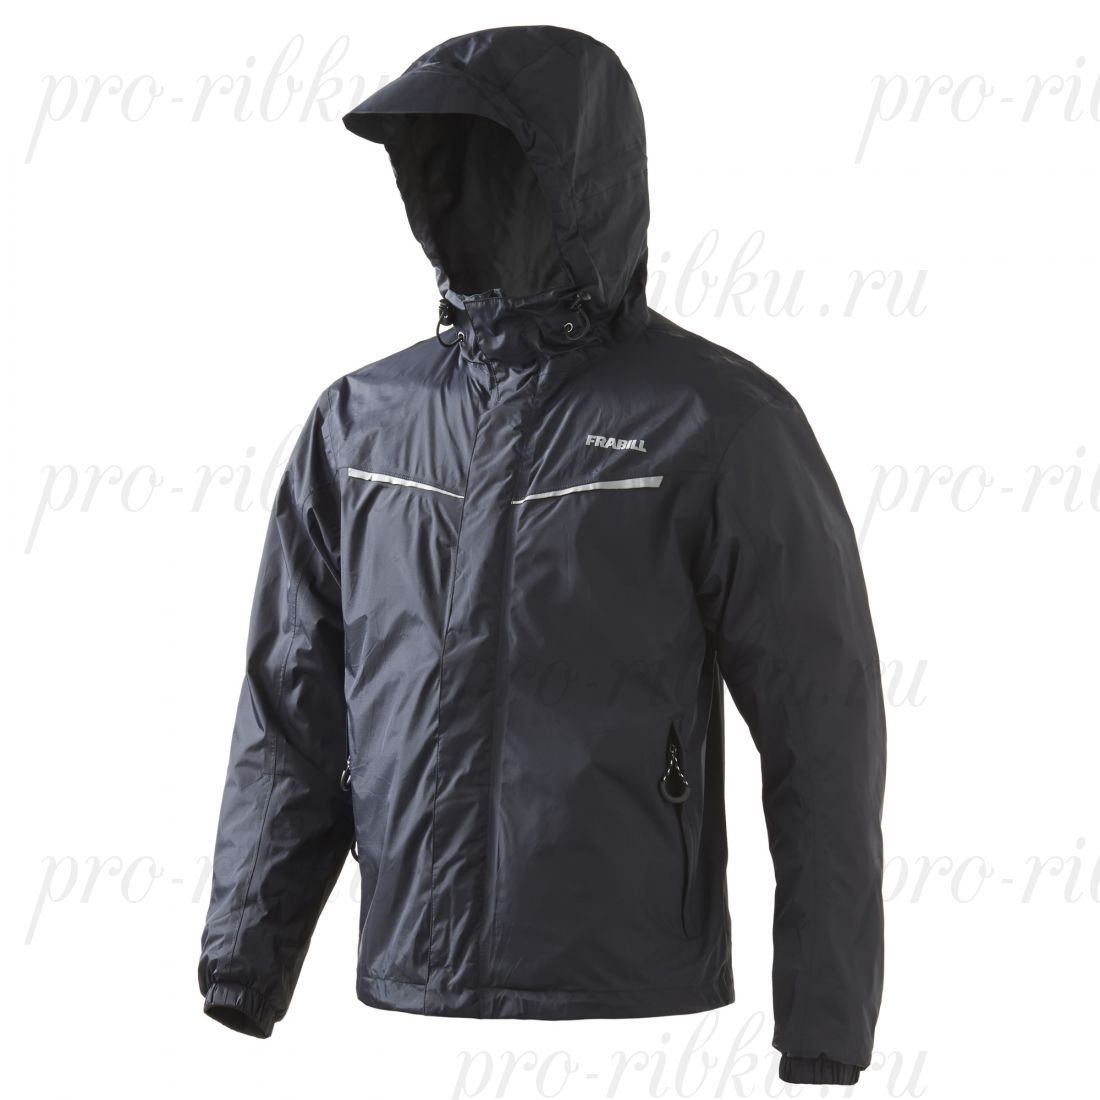 Куртка штормовая FRABILL Stow Jacket Black, р. M